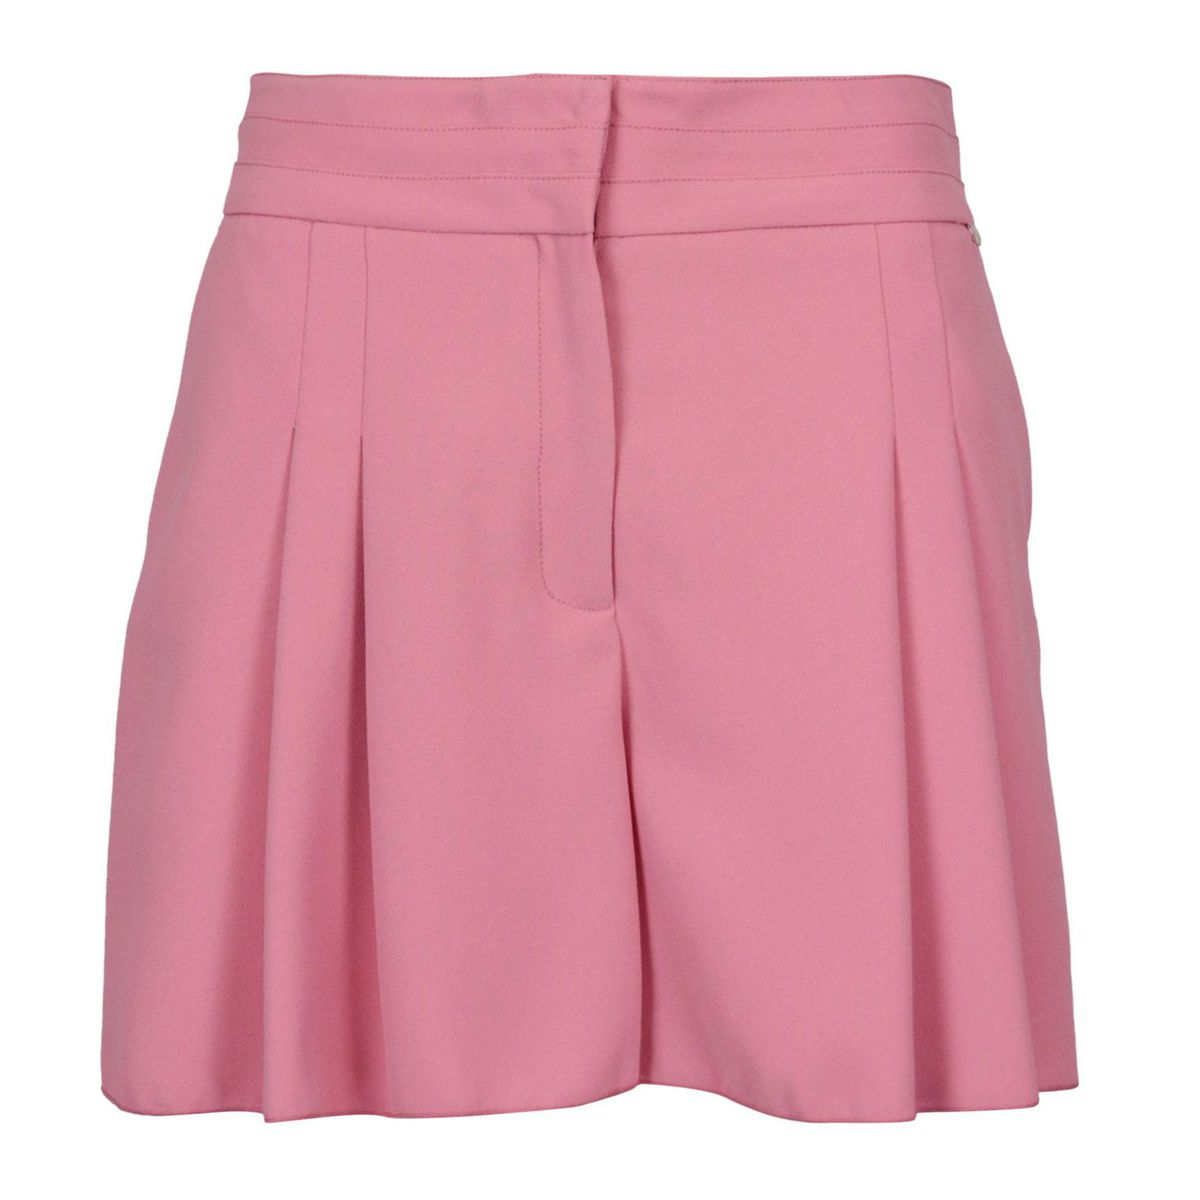 Short Egle in cady with folds and welt pockets Petal Nenette